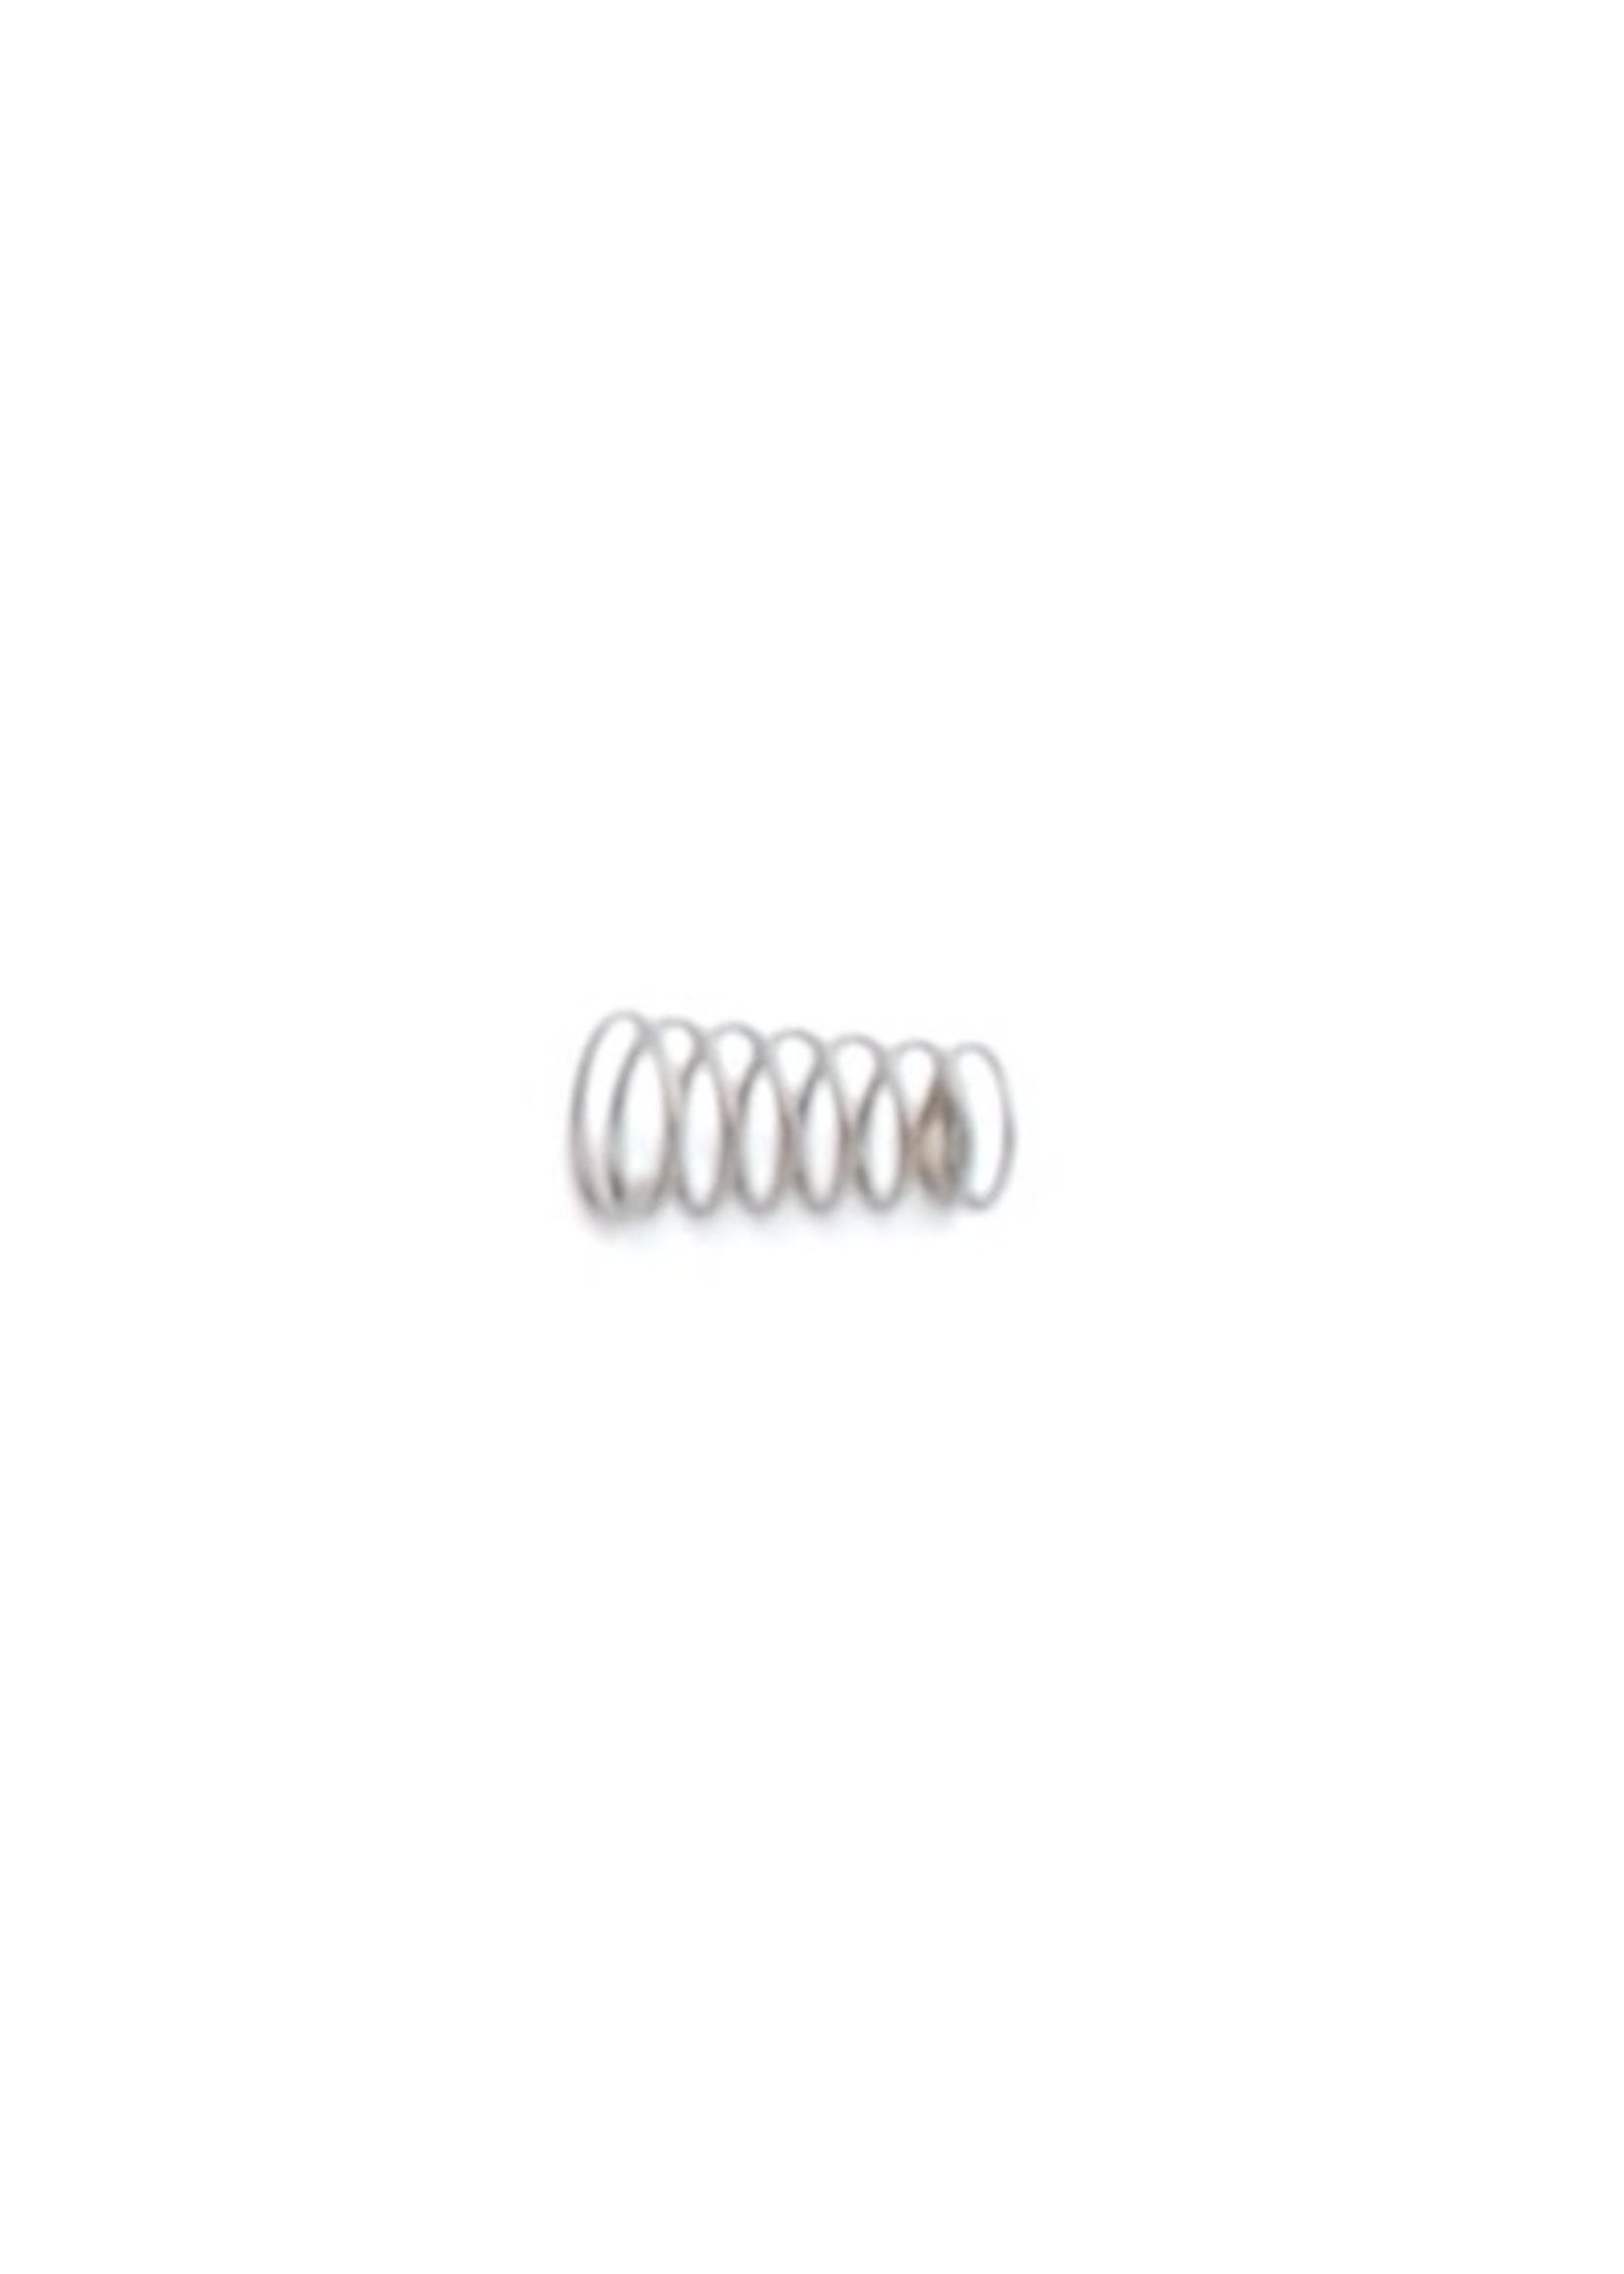 G43 Extractor spring